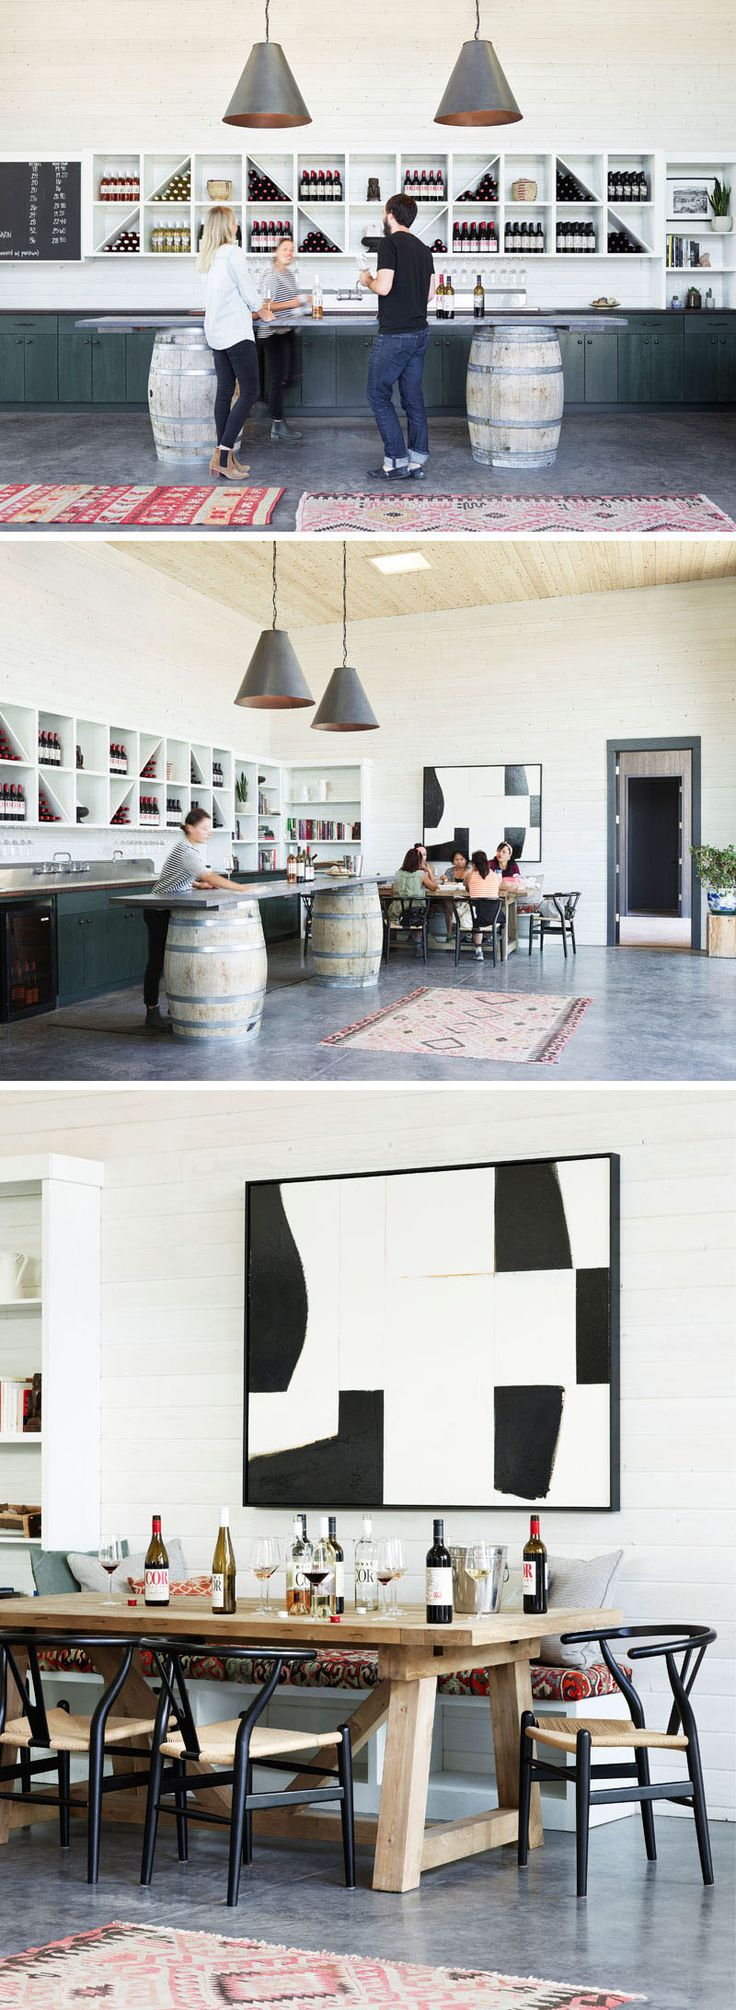 best 25 tasting room ideas on pinterest the pub menu bar